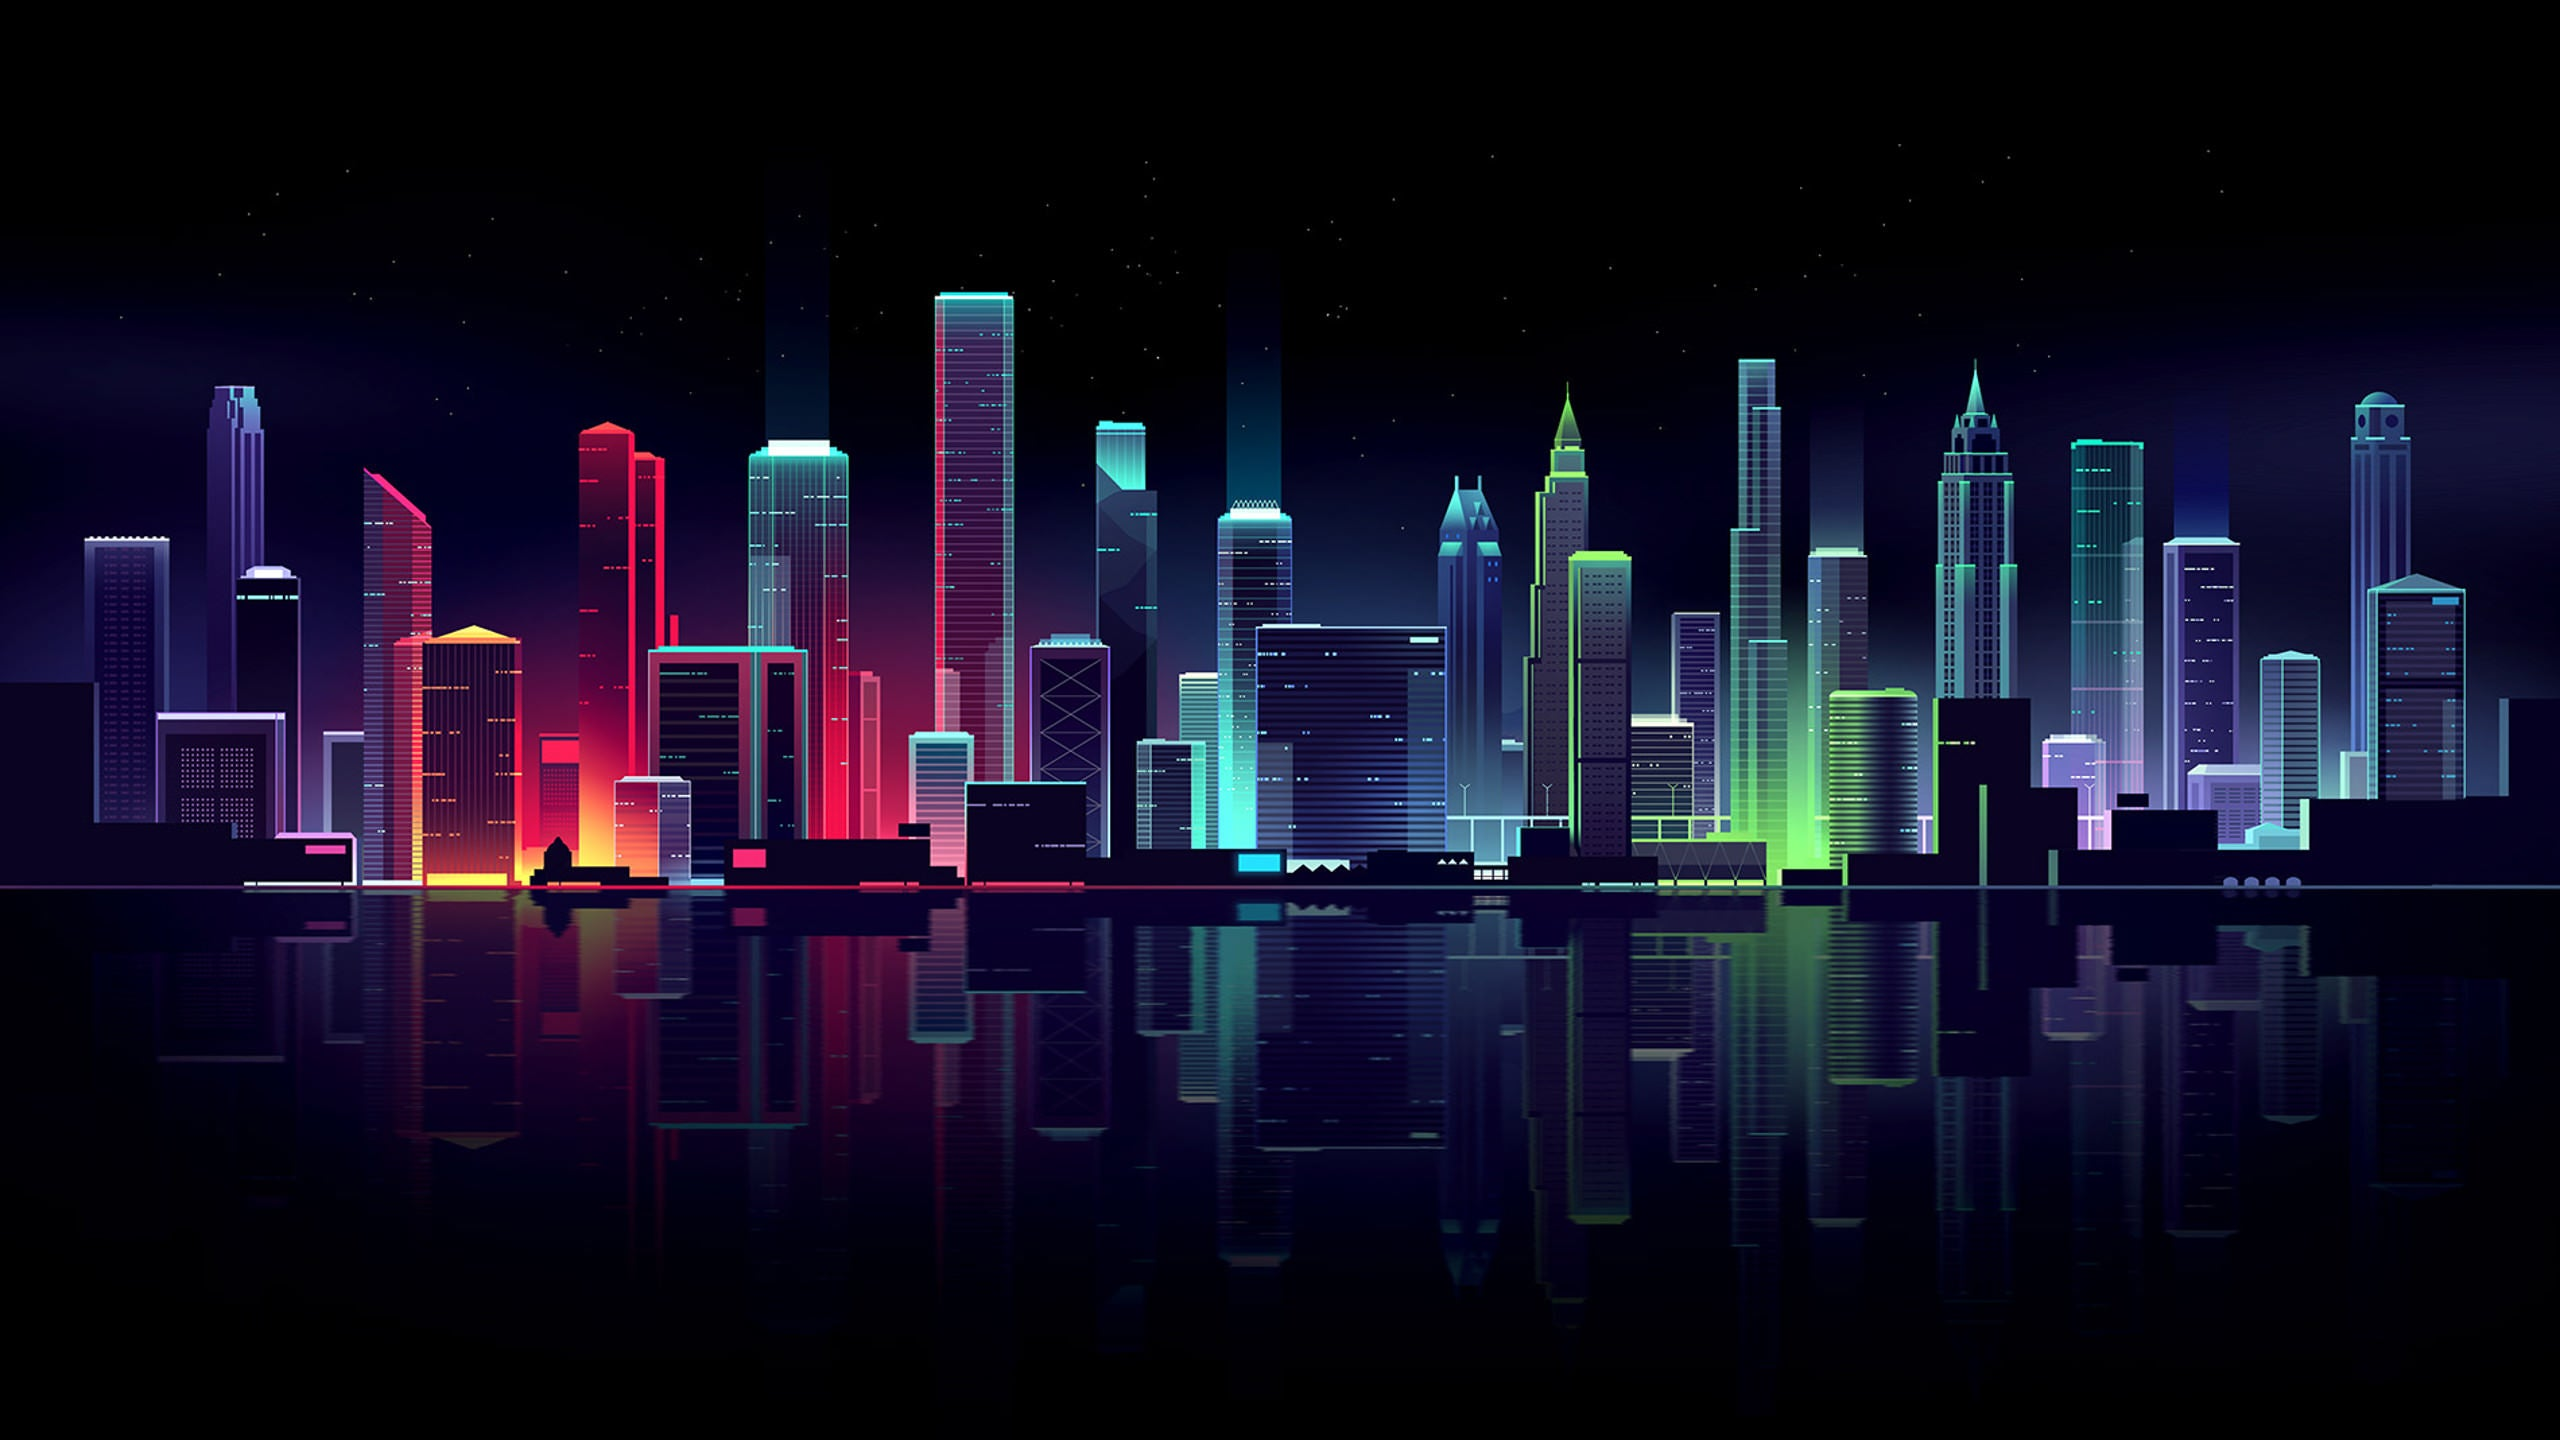 City Skyline Wallpapers